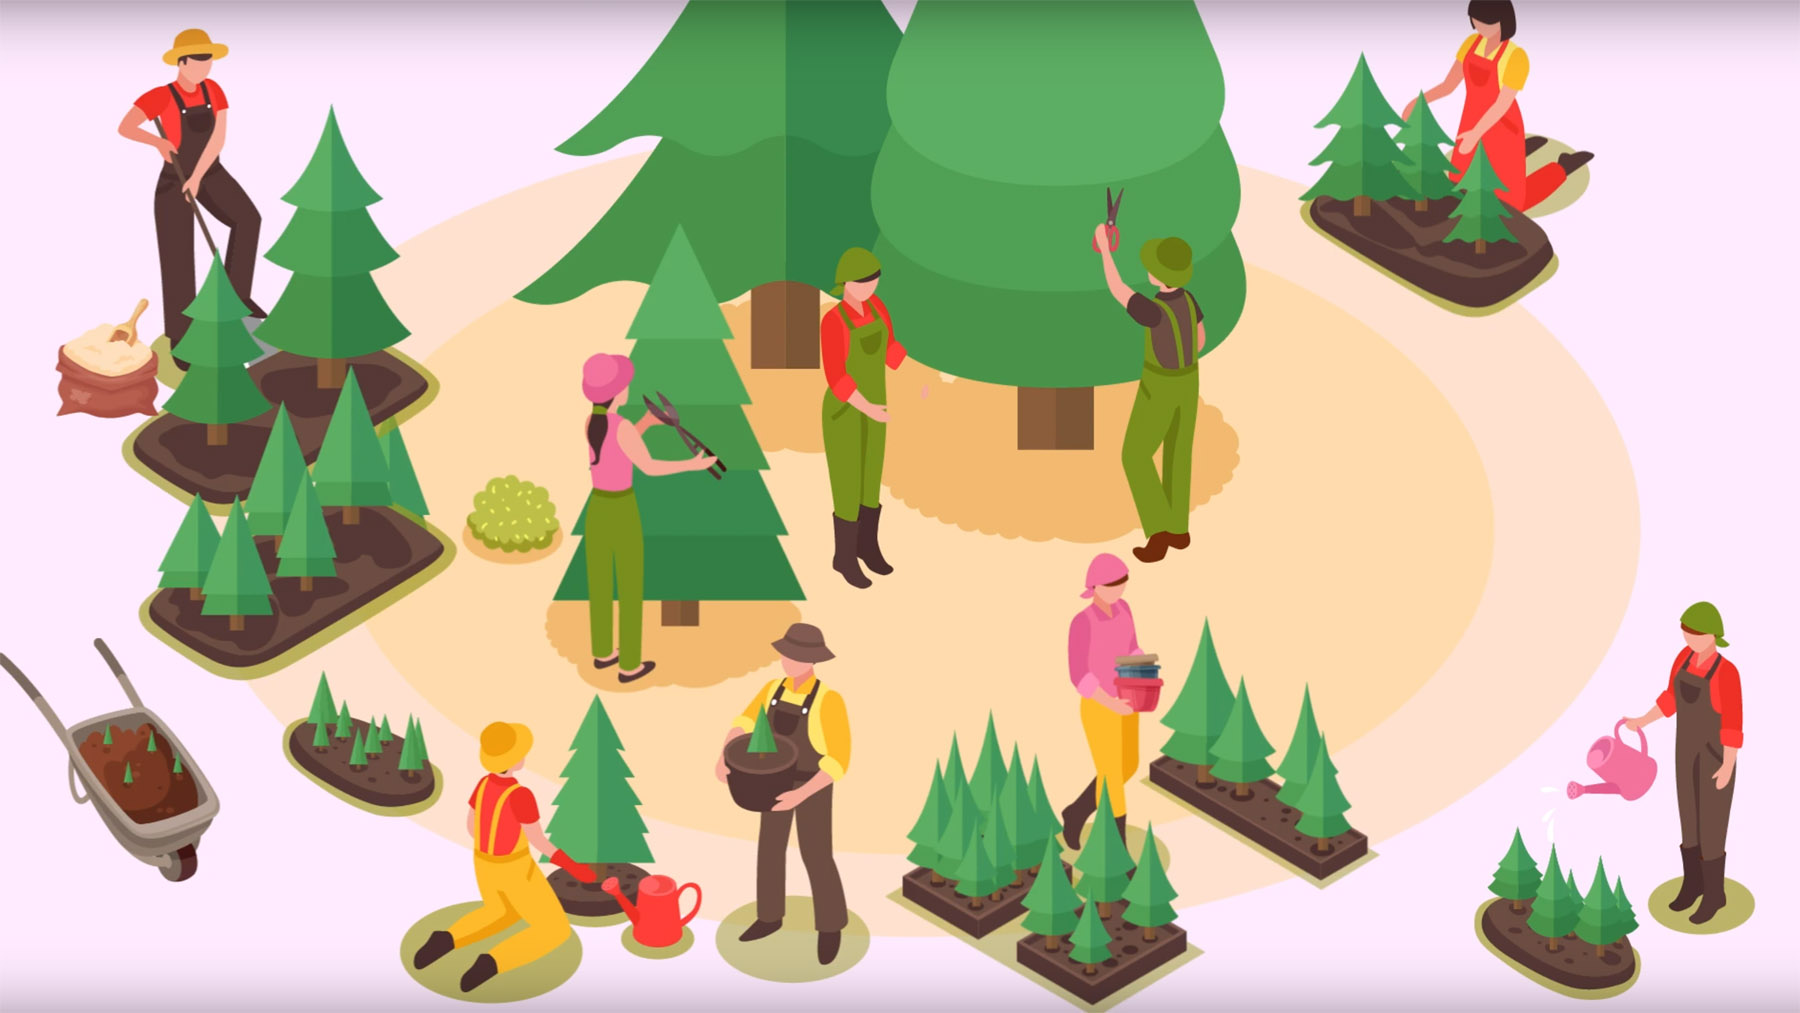 Animated graphic of various people performing tasks associated with Christmas trree production.